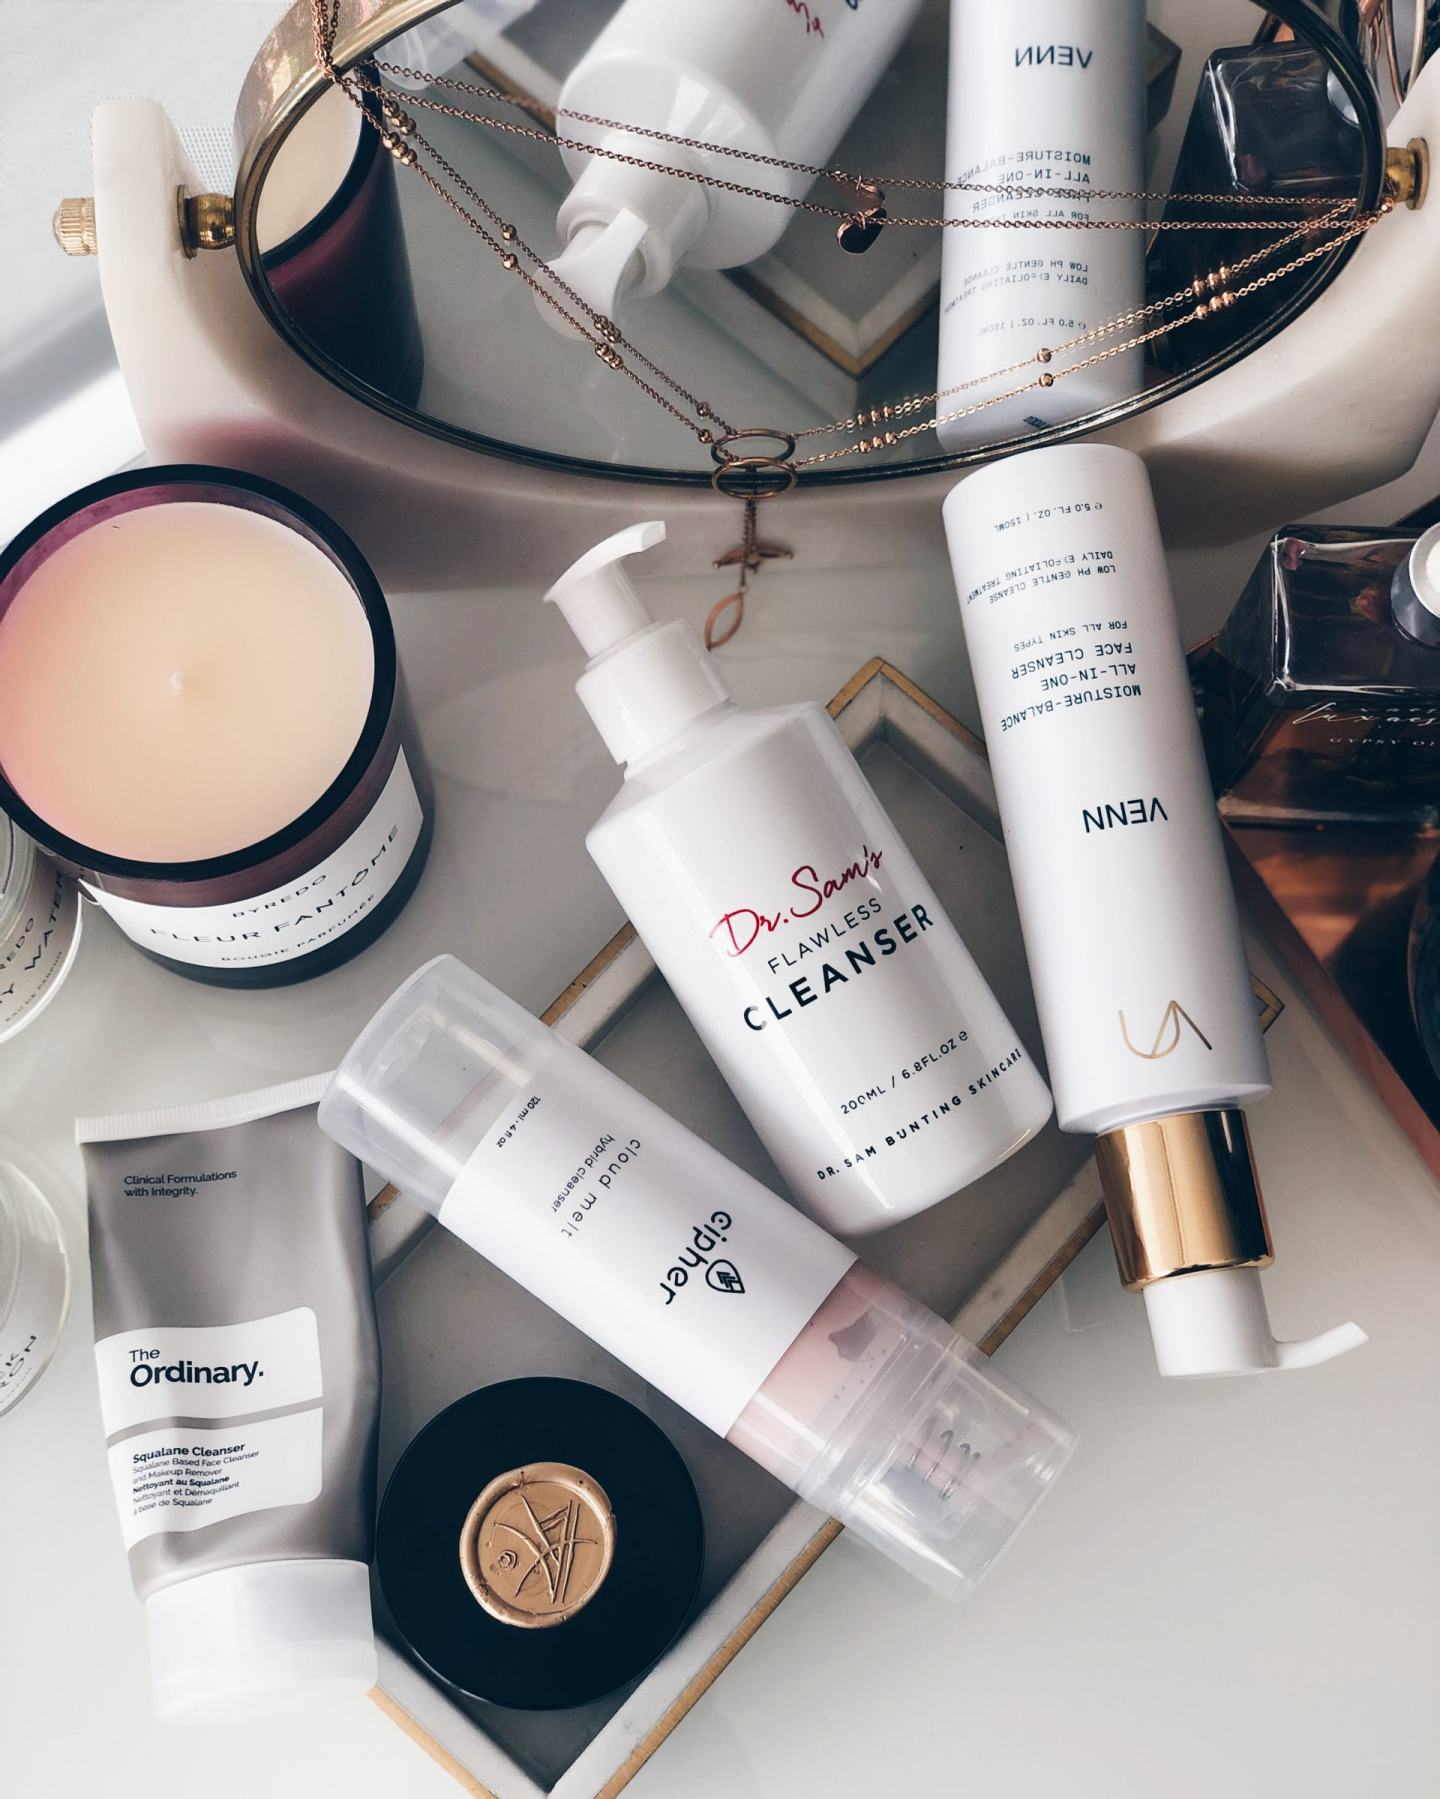 5 best cleansers for dry sensitive skin